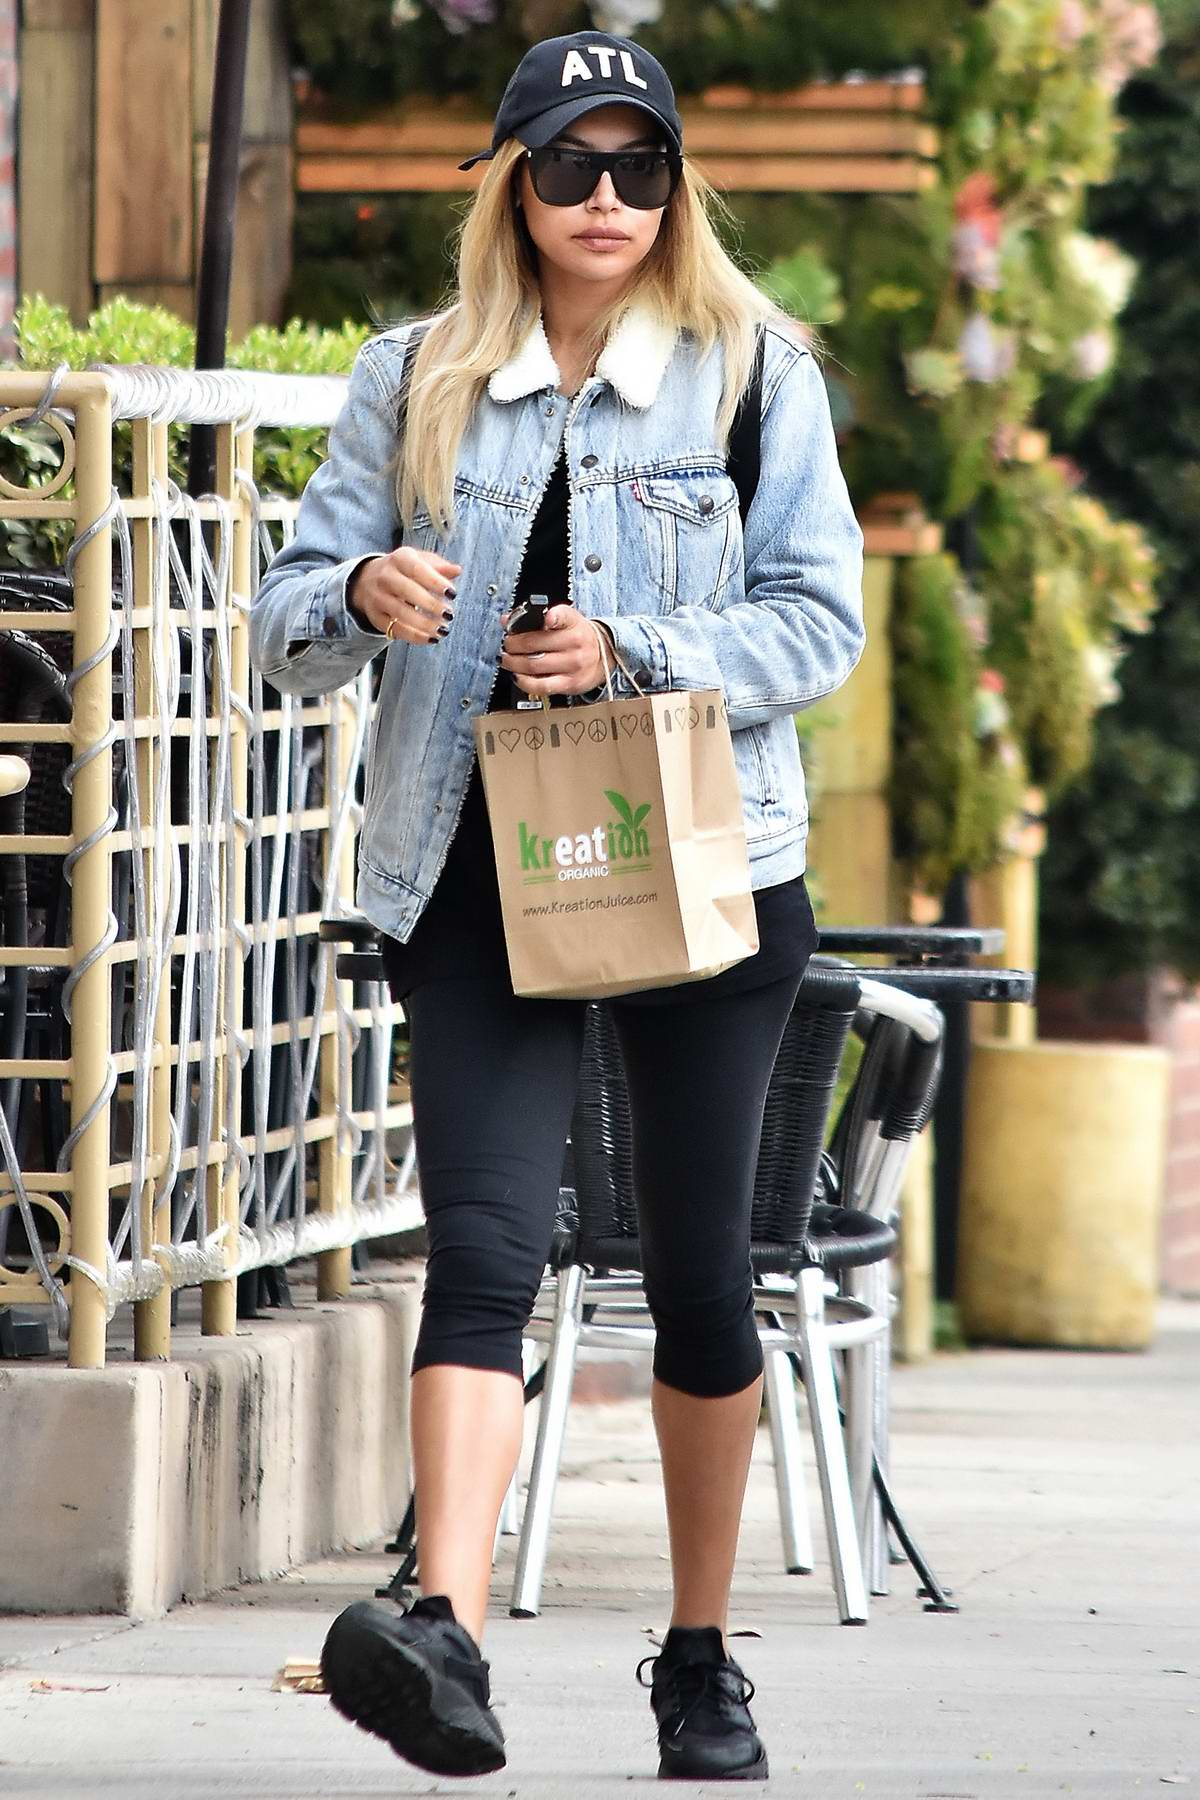 Naya Rivera stops by Kreation Kafe in Los Angeles